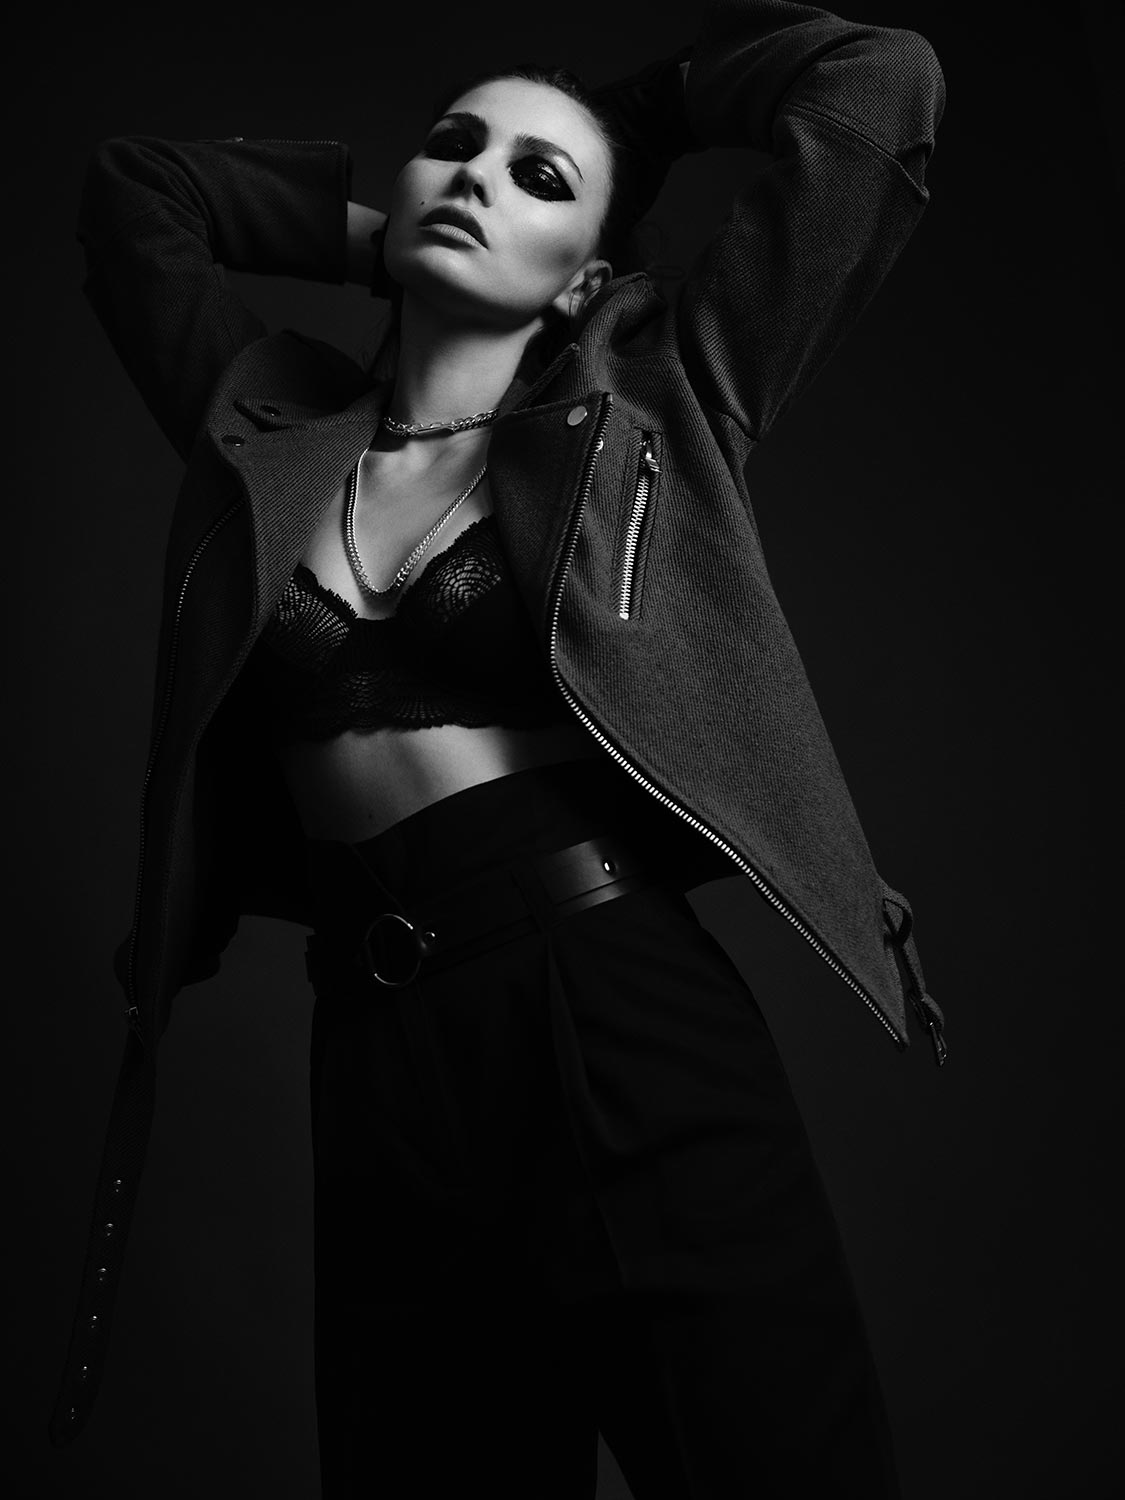 Skinner Sinner – Vegan Leather Fashion Editorial by Brix and Maas for Antagonist